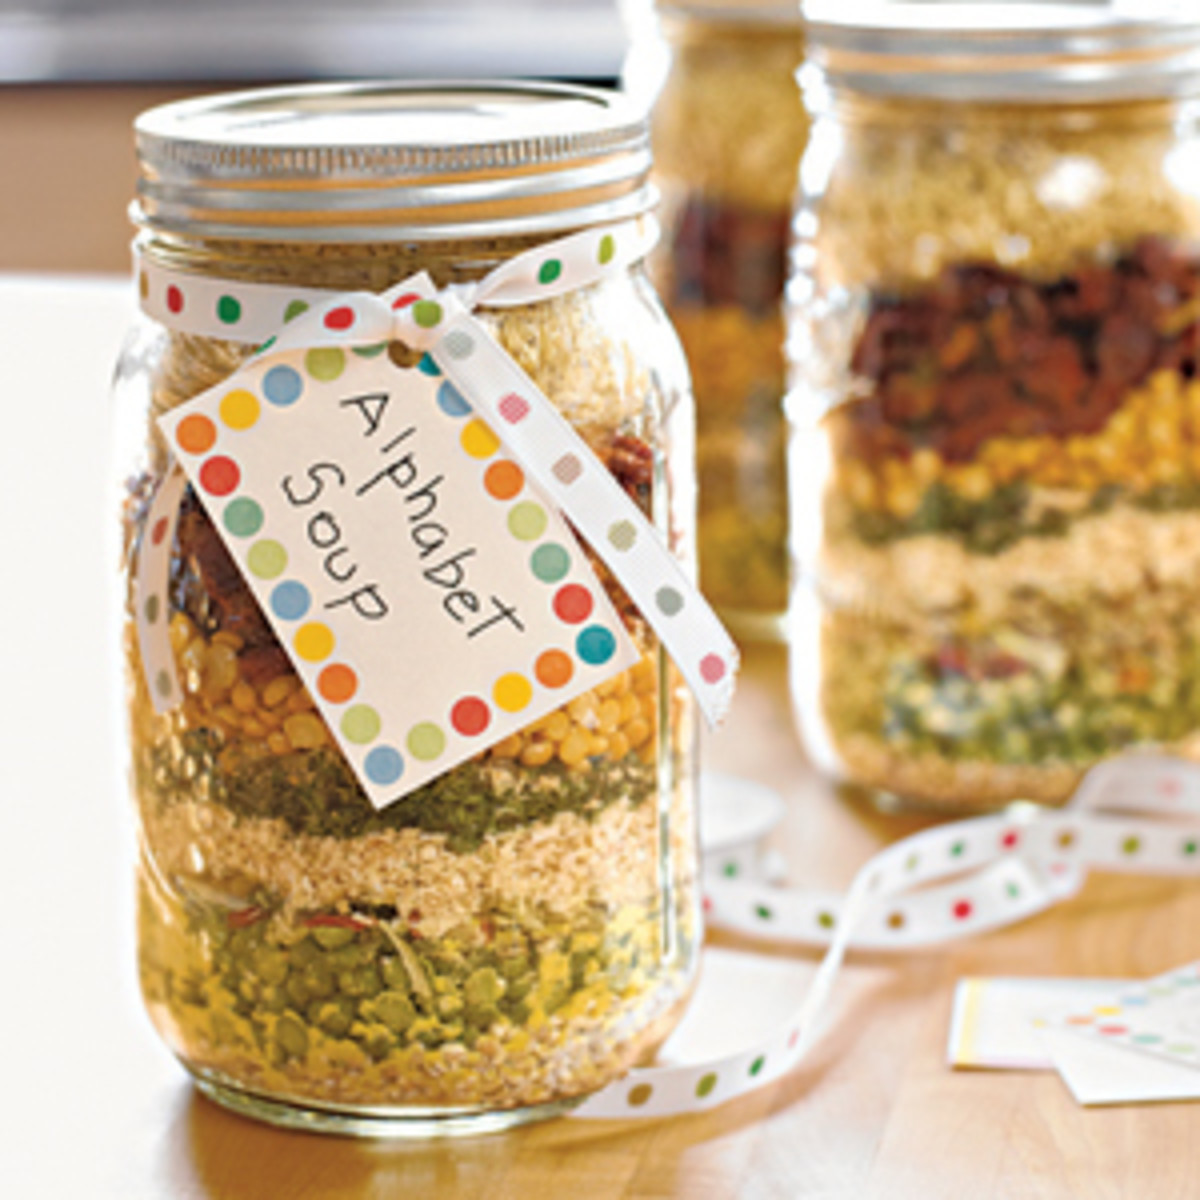 Alphabet Soup Mix in a Jar